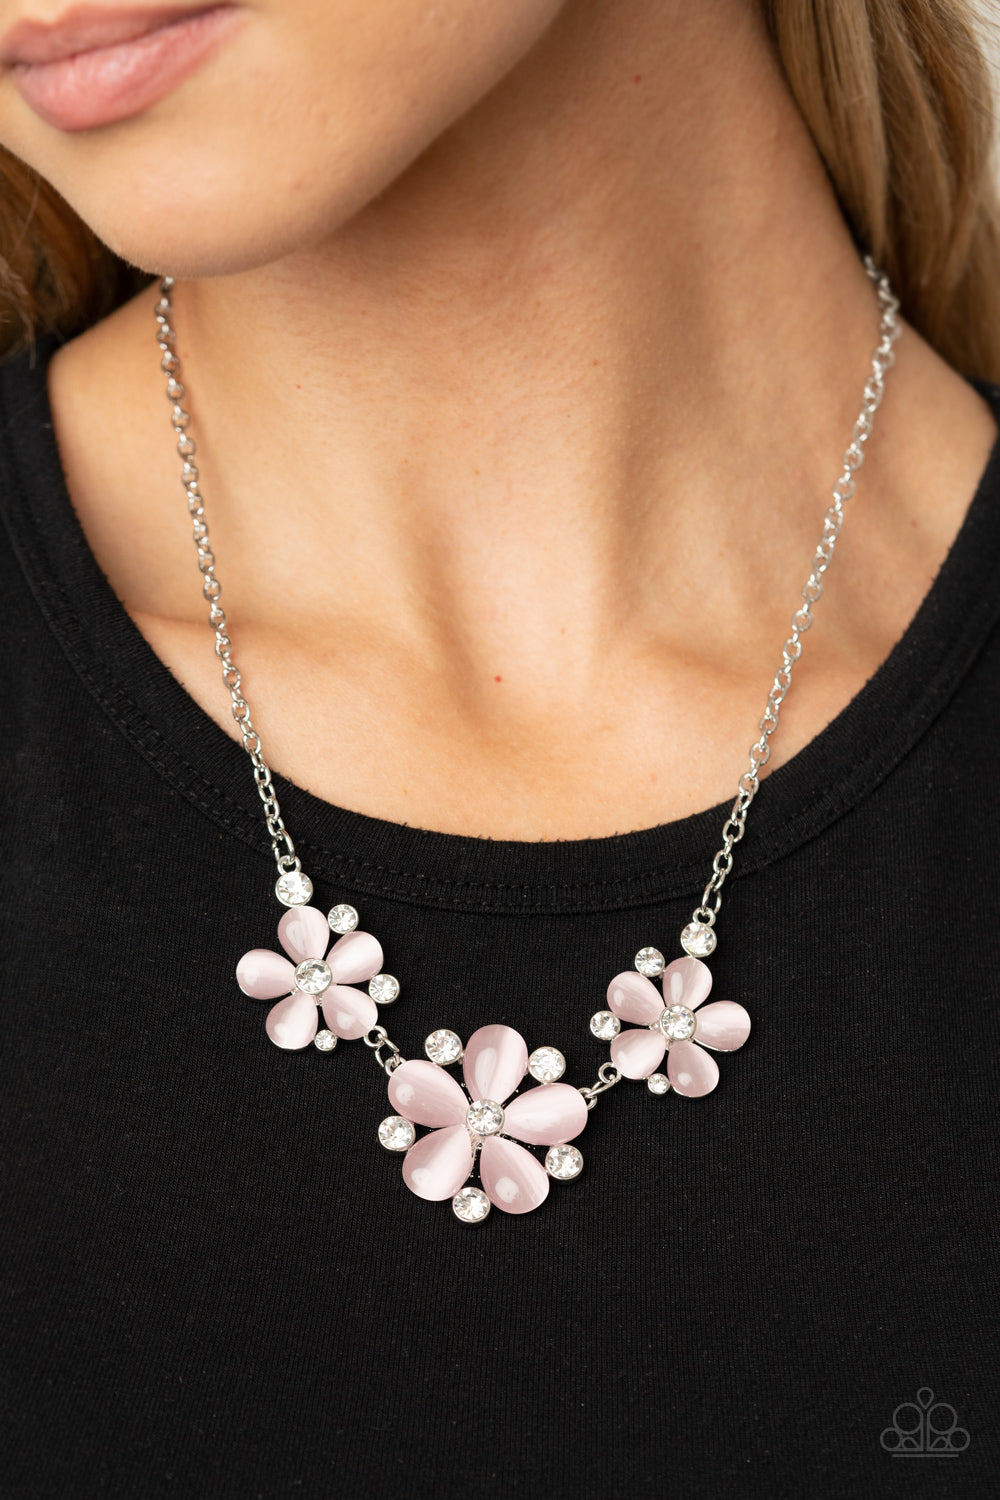 Paparazzi Jewelry & Accessories - Effortlessly Efflorescent - Pink Necklace. Bling By Titia Boutique